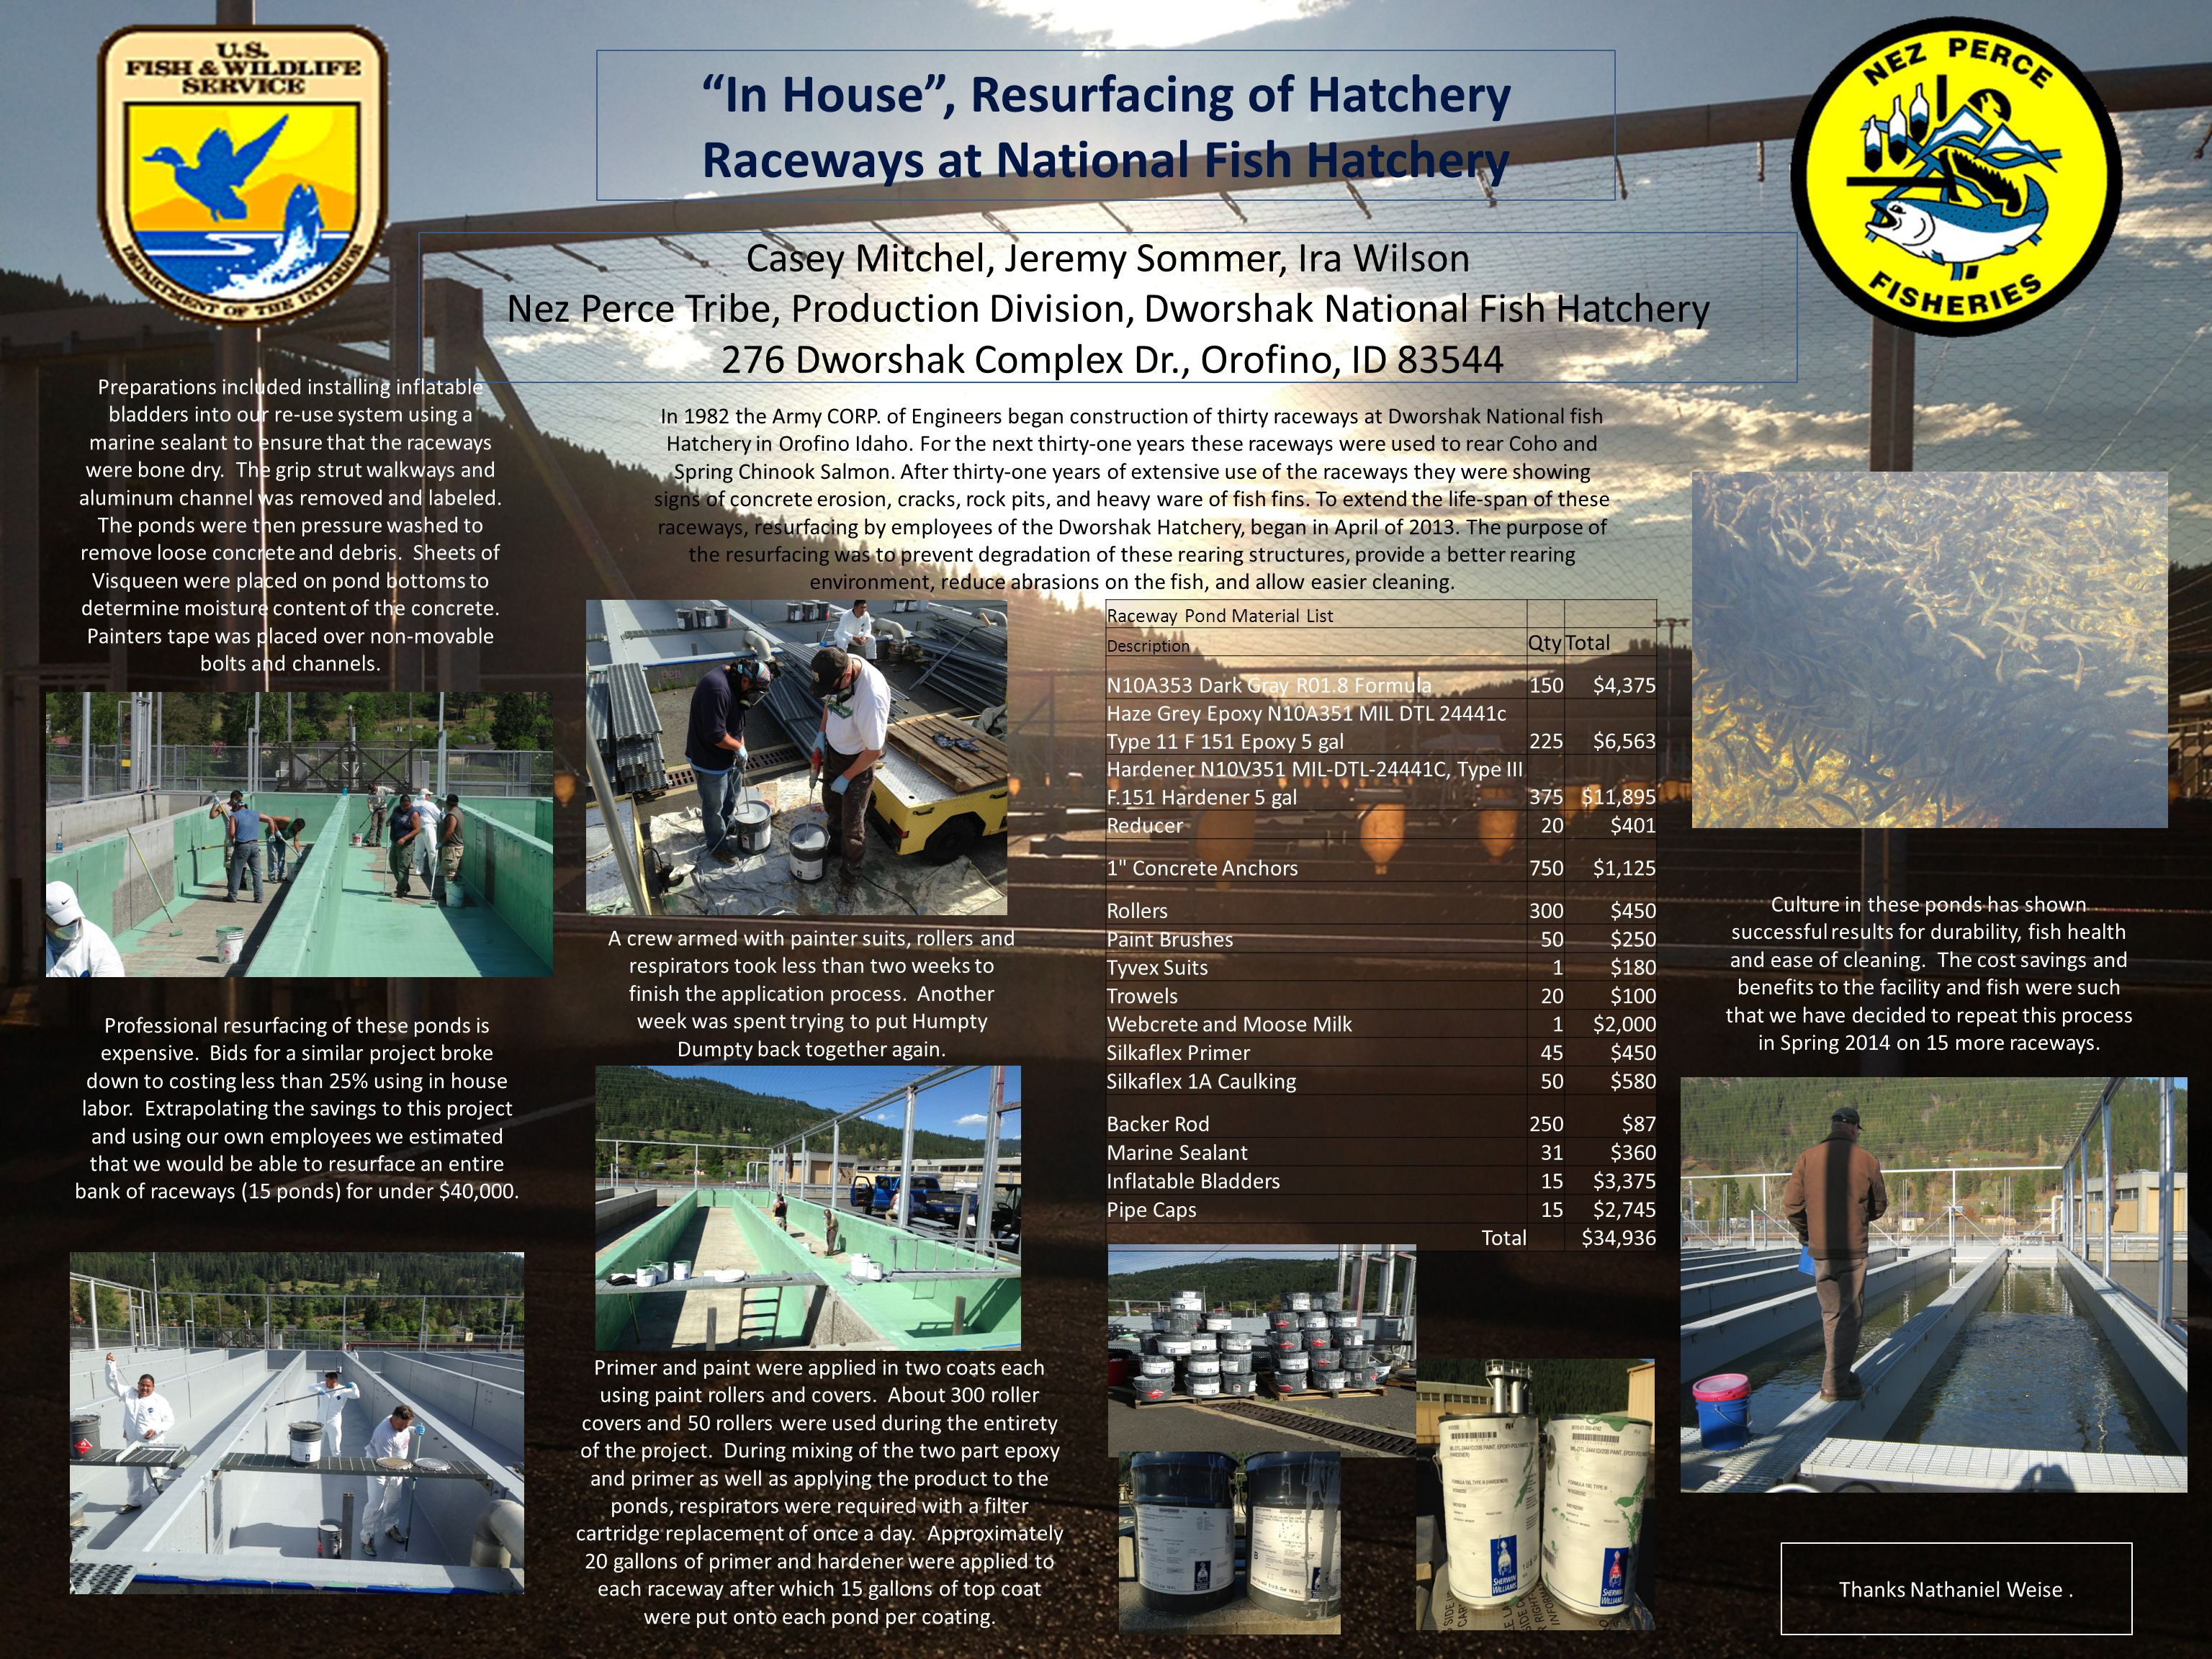 """""""In House"""", Resurfacing of Hatchery Raceways at National Fish Hatchery Casey Mitchel, Jeremy Sommer, Ira Wilson Nez Perce Tribe, Production Division,"""